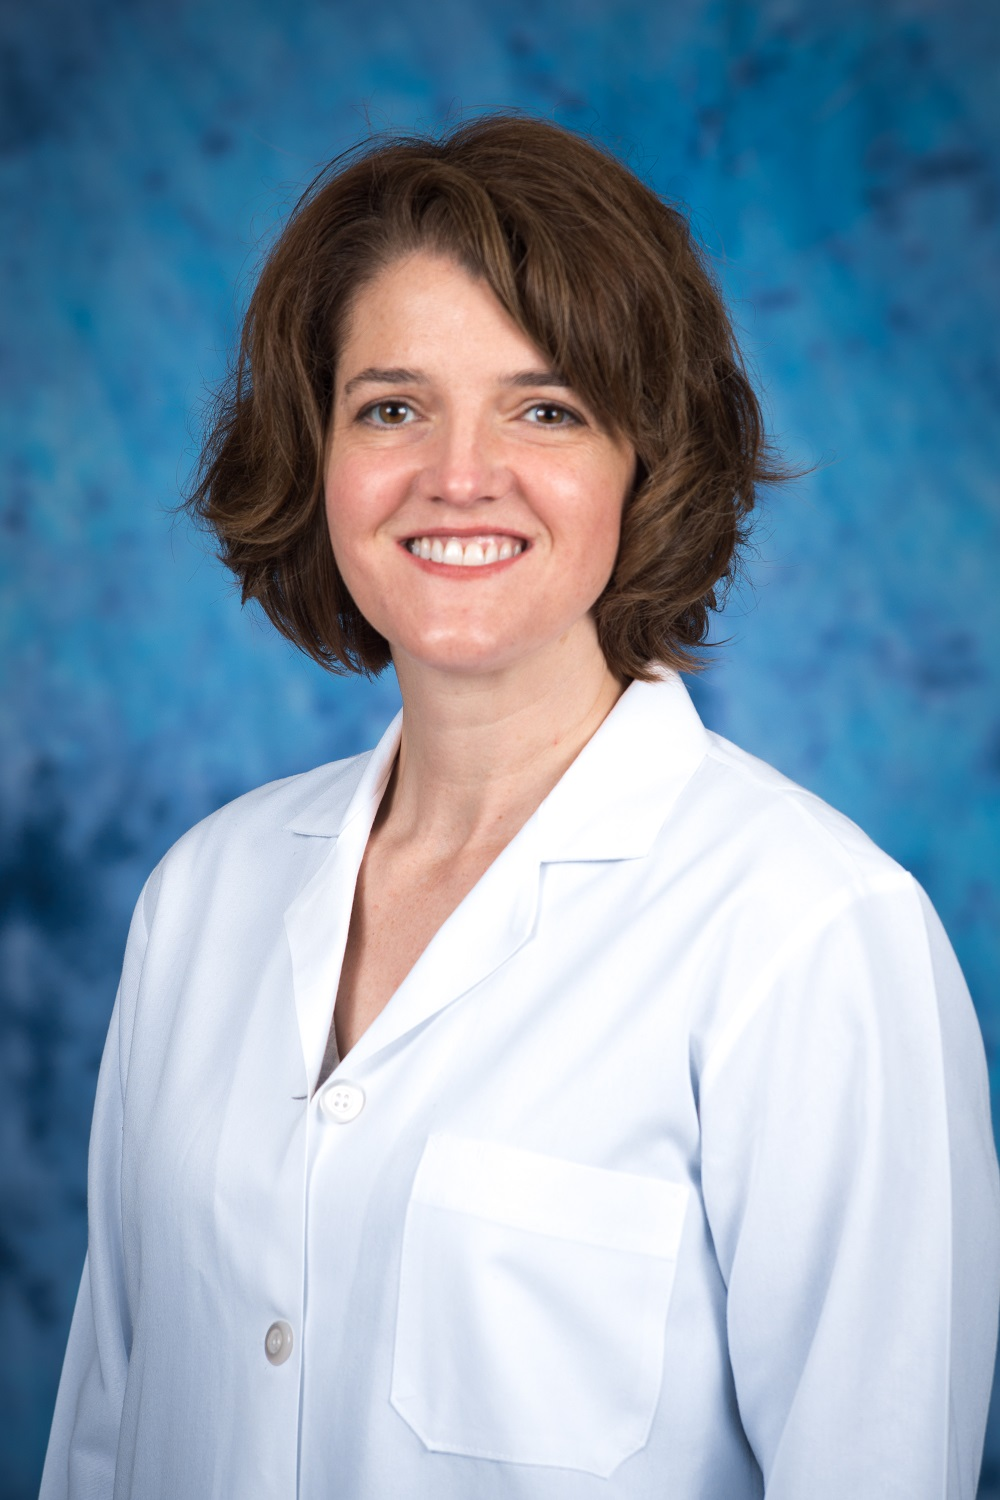 Thea Cross, MD of the medical team at Pinnacle Neurology